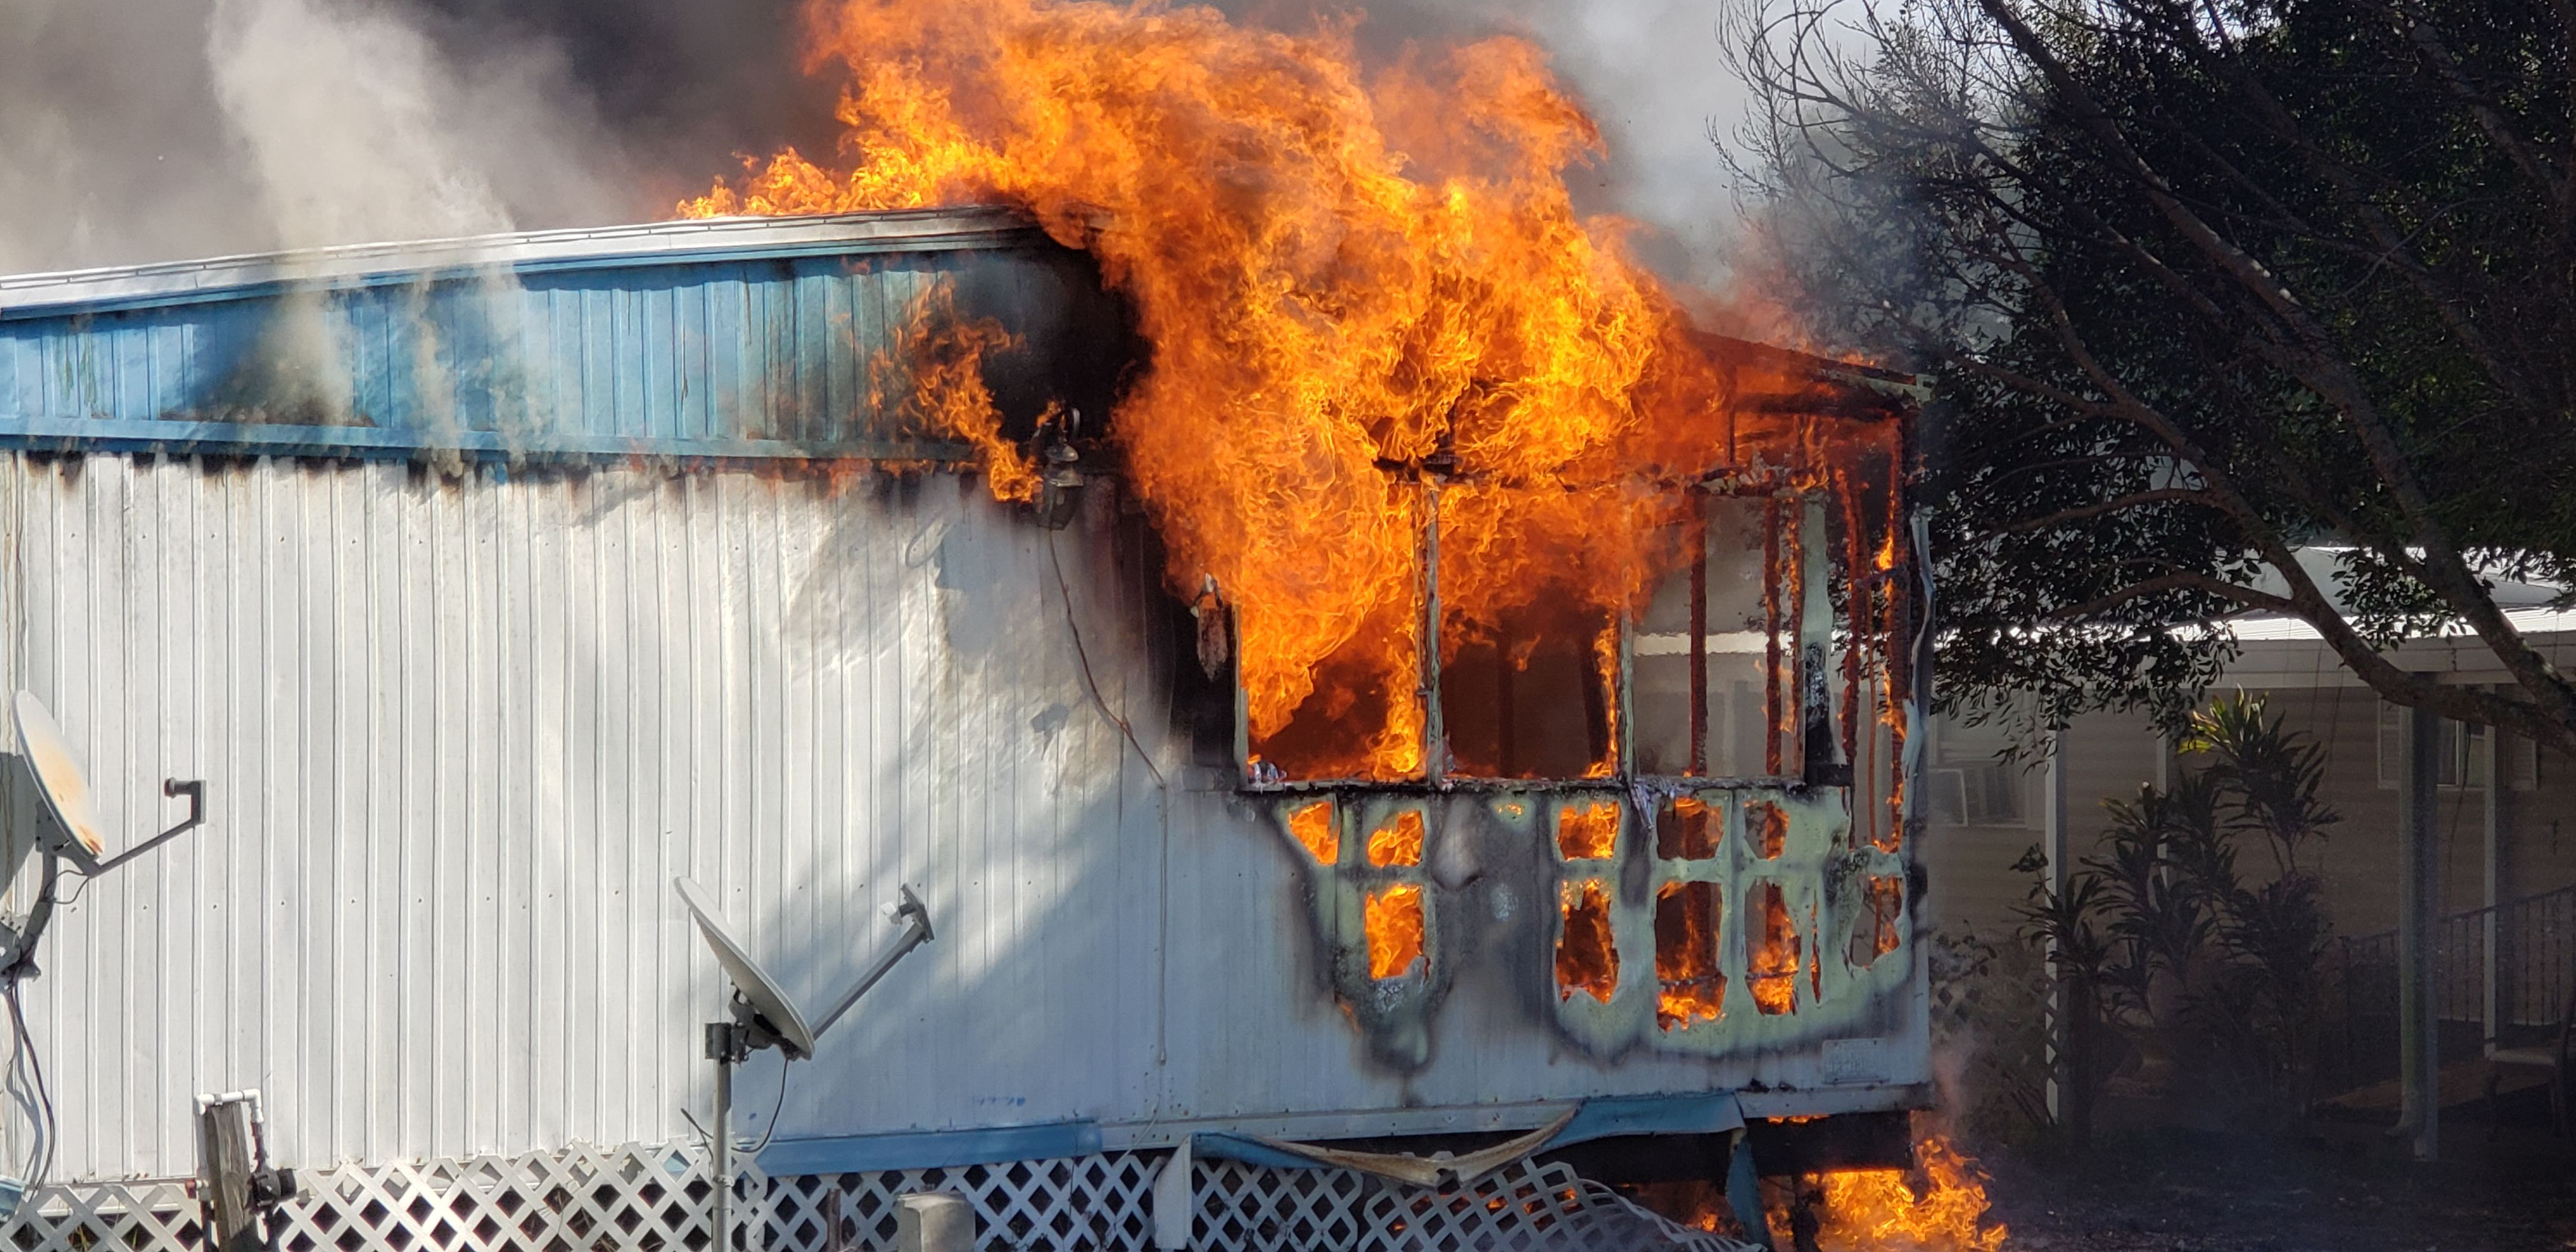 A mobile home caught fire, in Largo, Florida. Everything